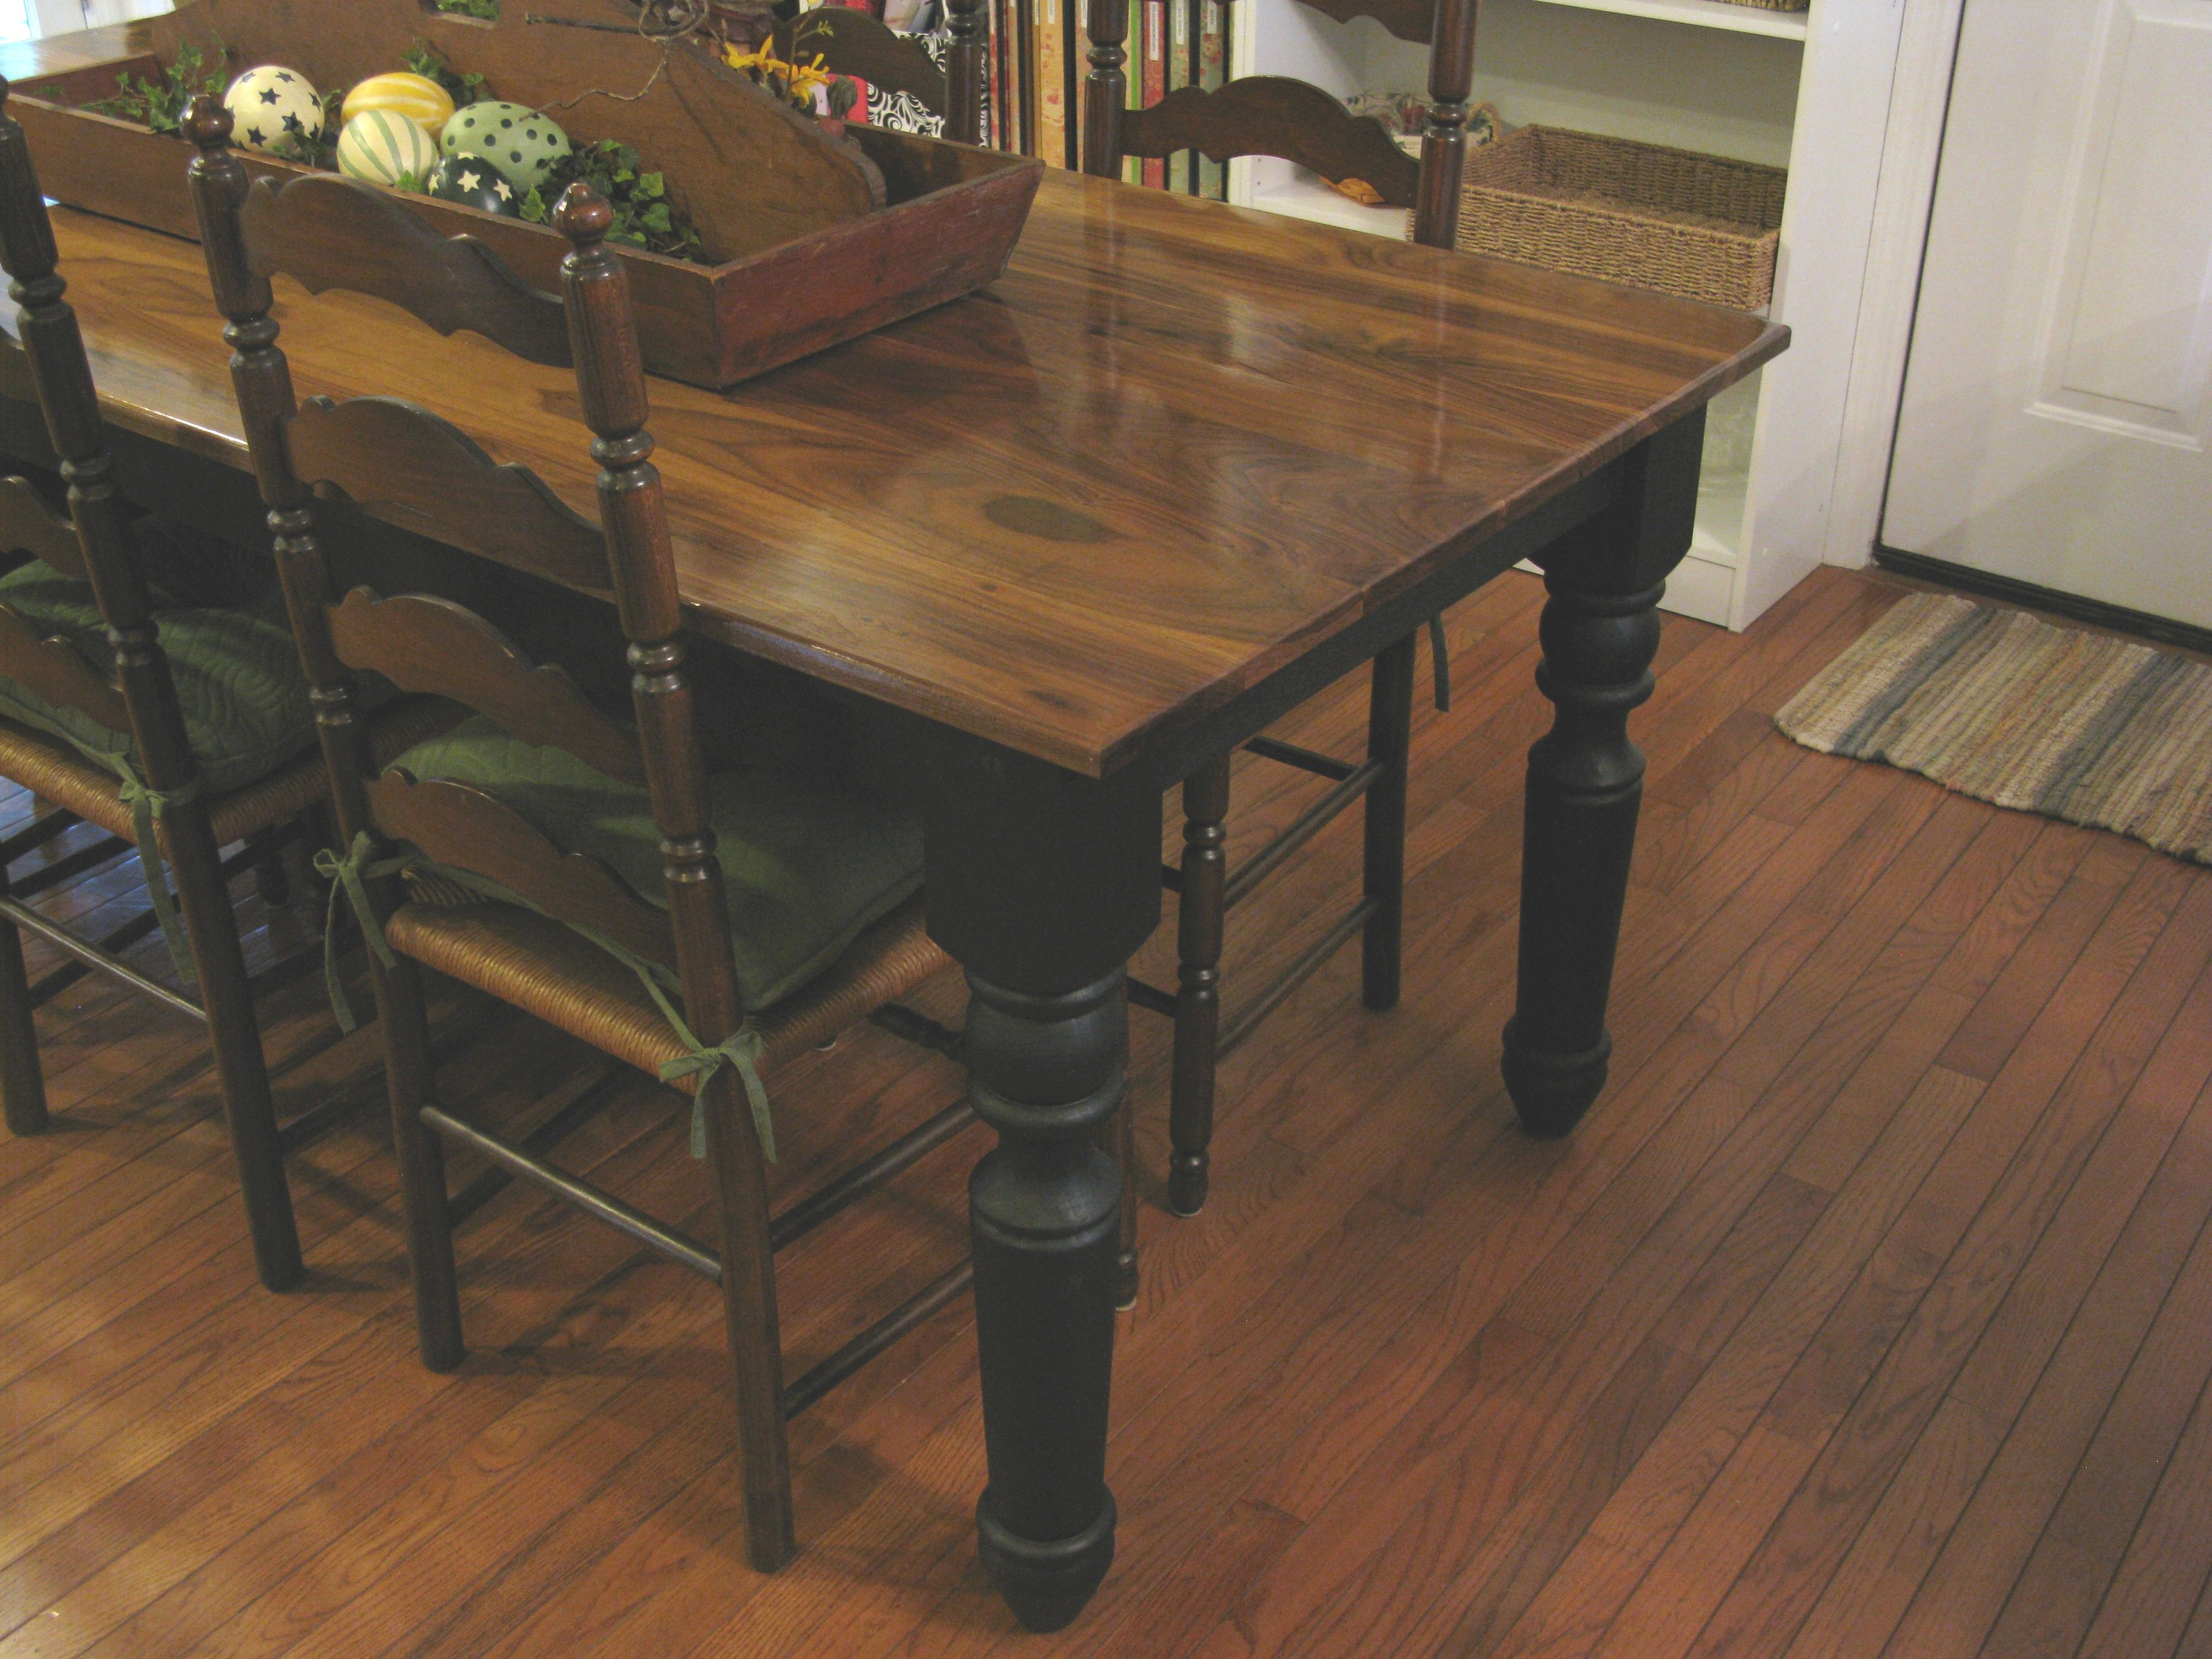 Are You Looking To Add A Farm Style Or Rustic Piece To Your Dining Beauteous Farm Style Dining Room Table Inspiration Design